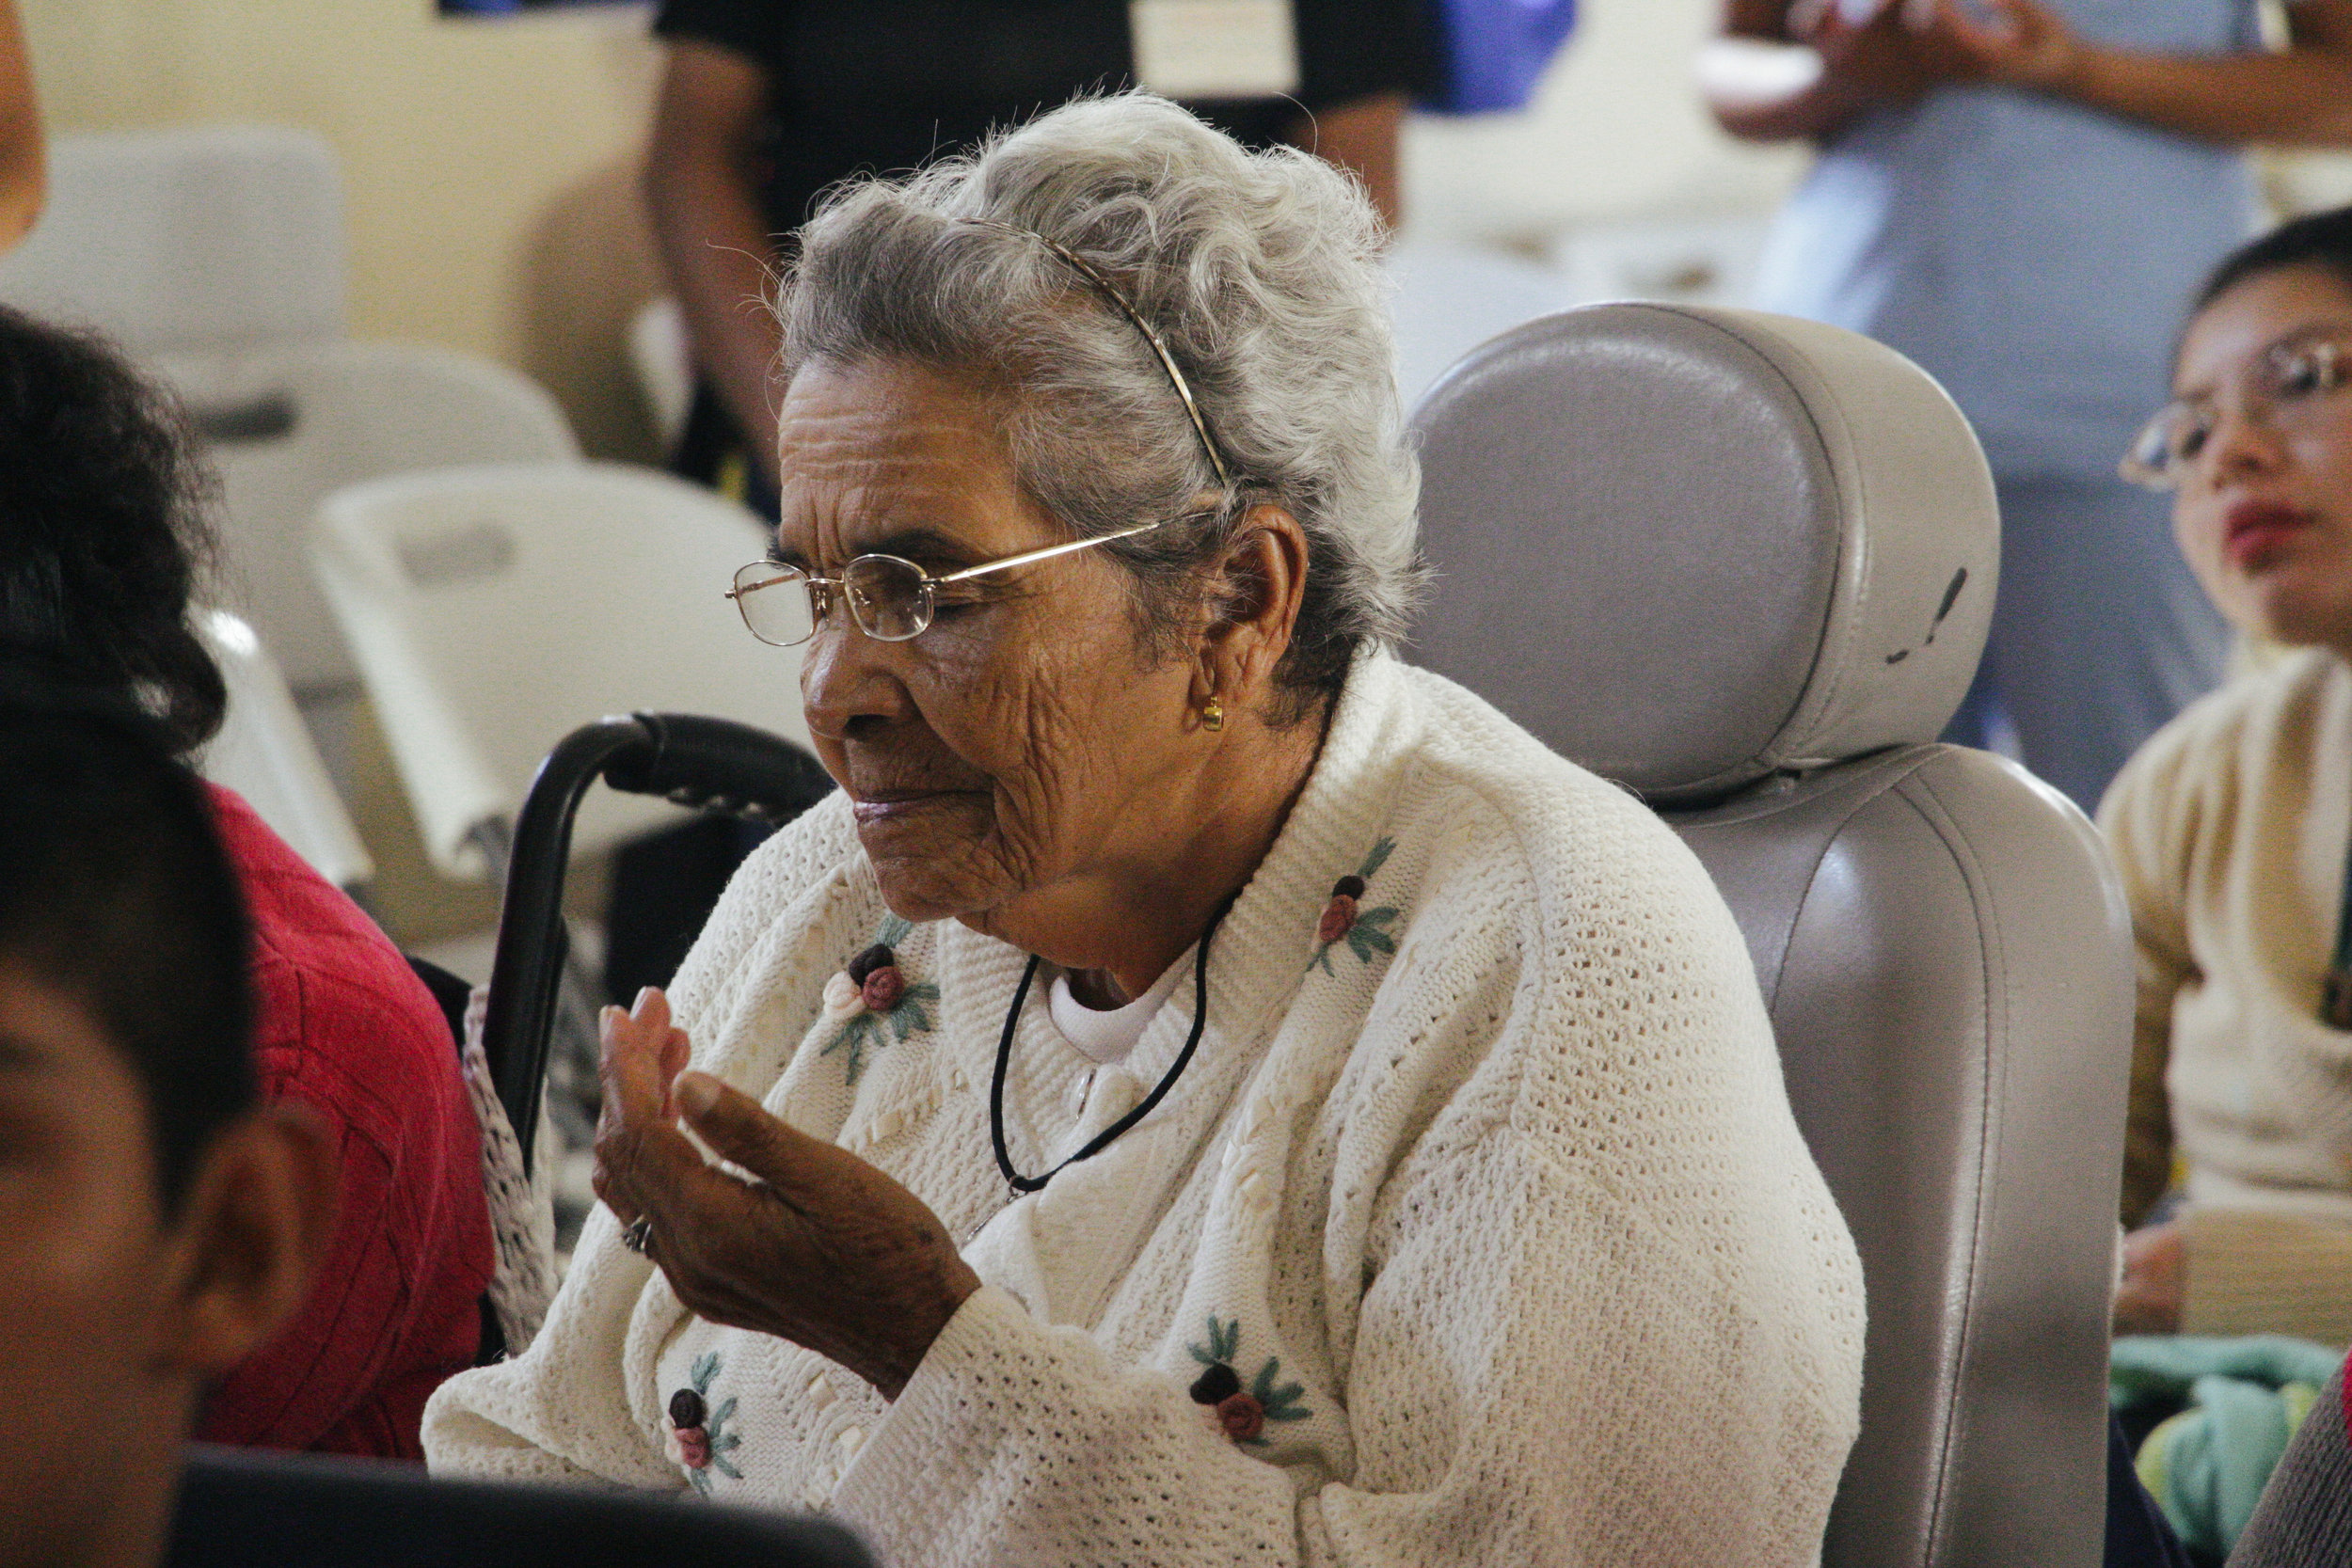 Photo by Miranda Weippert MARIA MATILDA, 83, CLOSES HER EYES TO PRAY WHILE PARTICIPATING IN MASS AT VIRGEN DEL SOCCORRO JAN. 19. VIRGEN DEL SOCORRO HOSTS MASS EVERY THURSDAY AND SUNDAY.